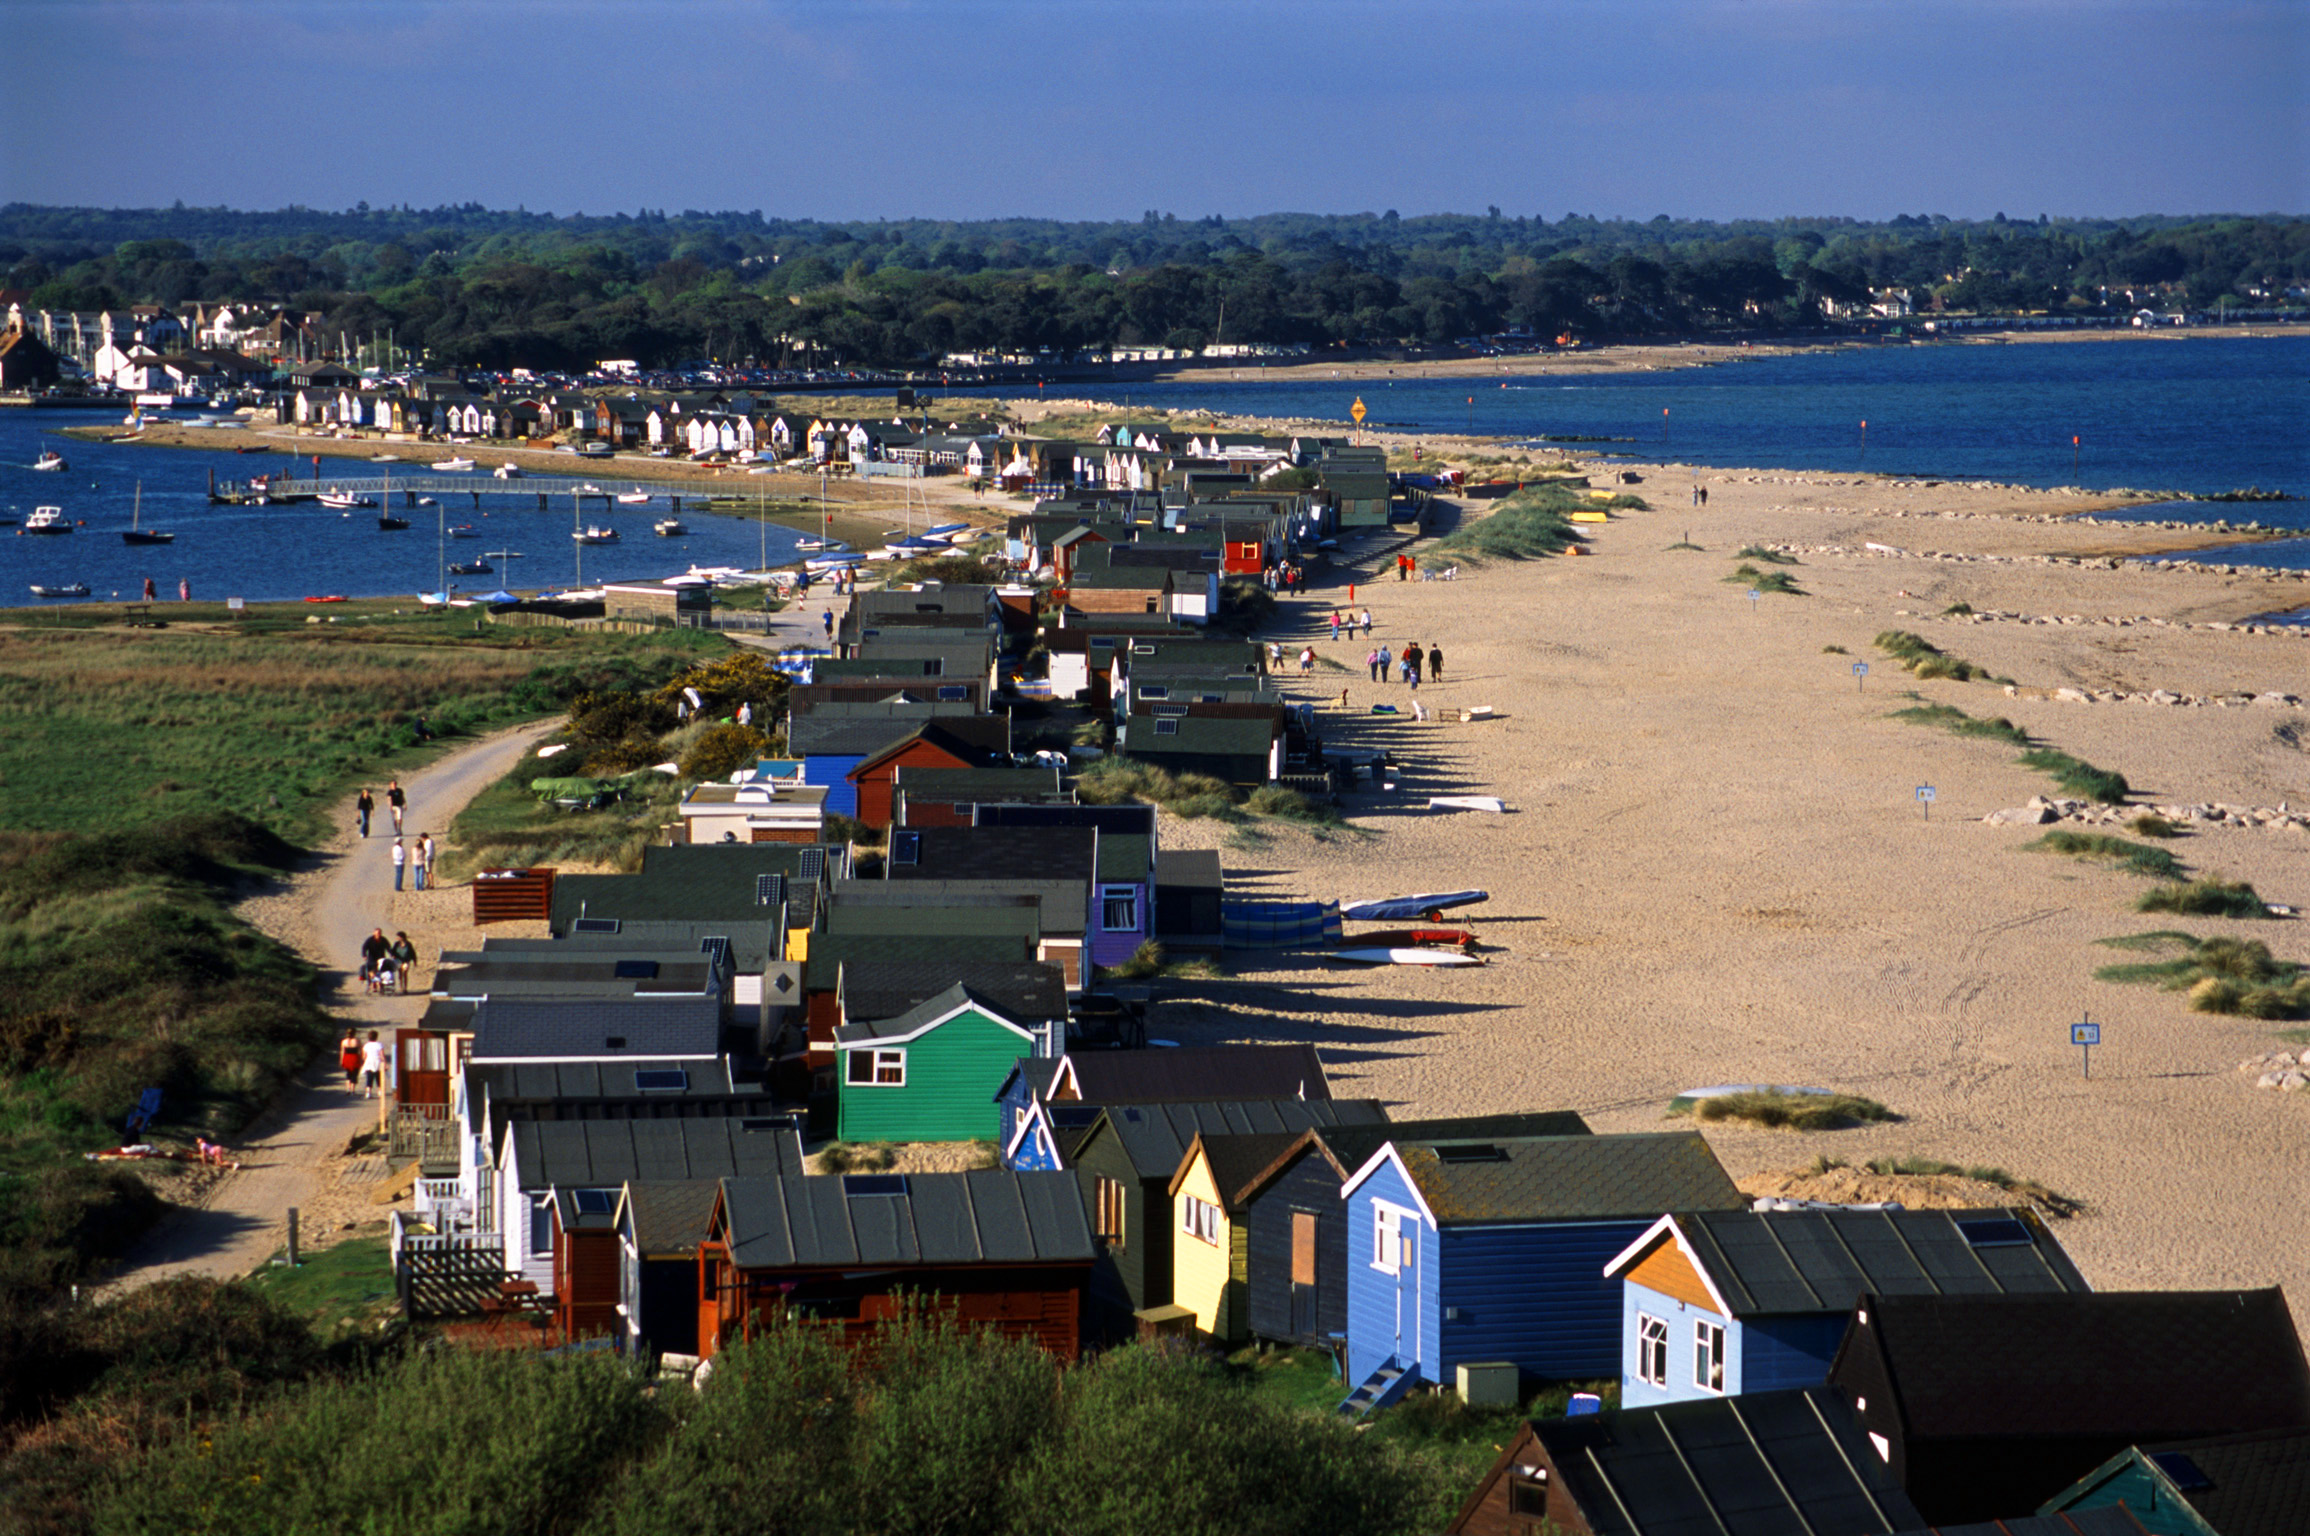 line of beach huts on the mudeford sand spit, christchurch harbour, dorset